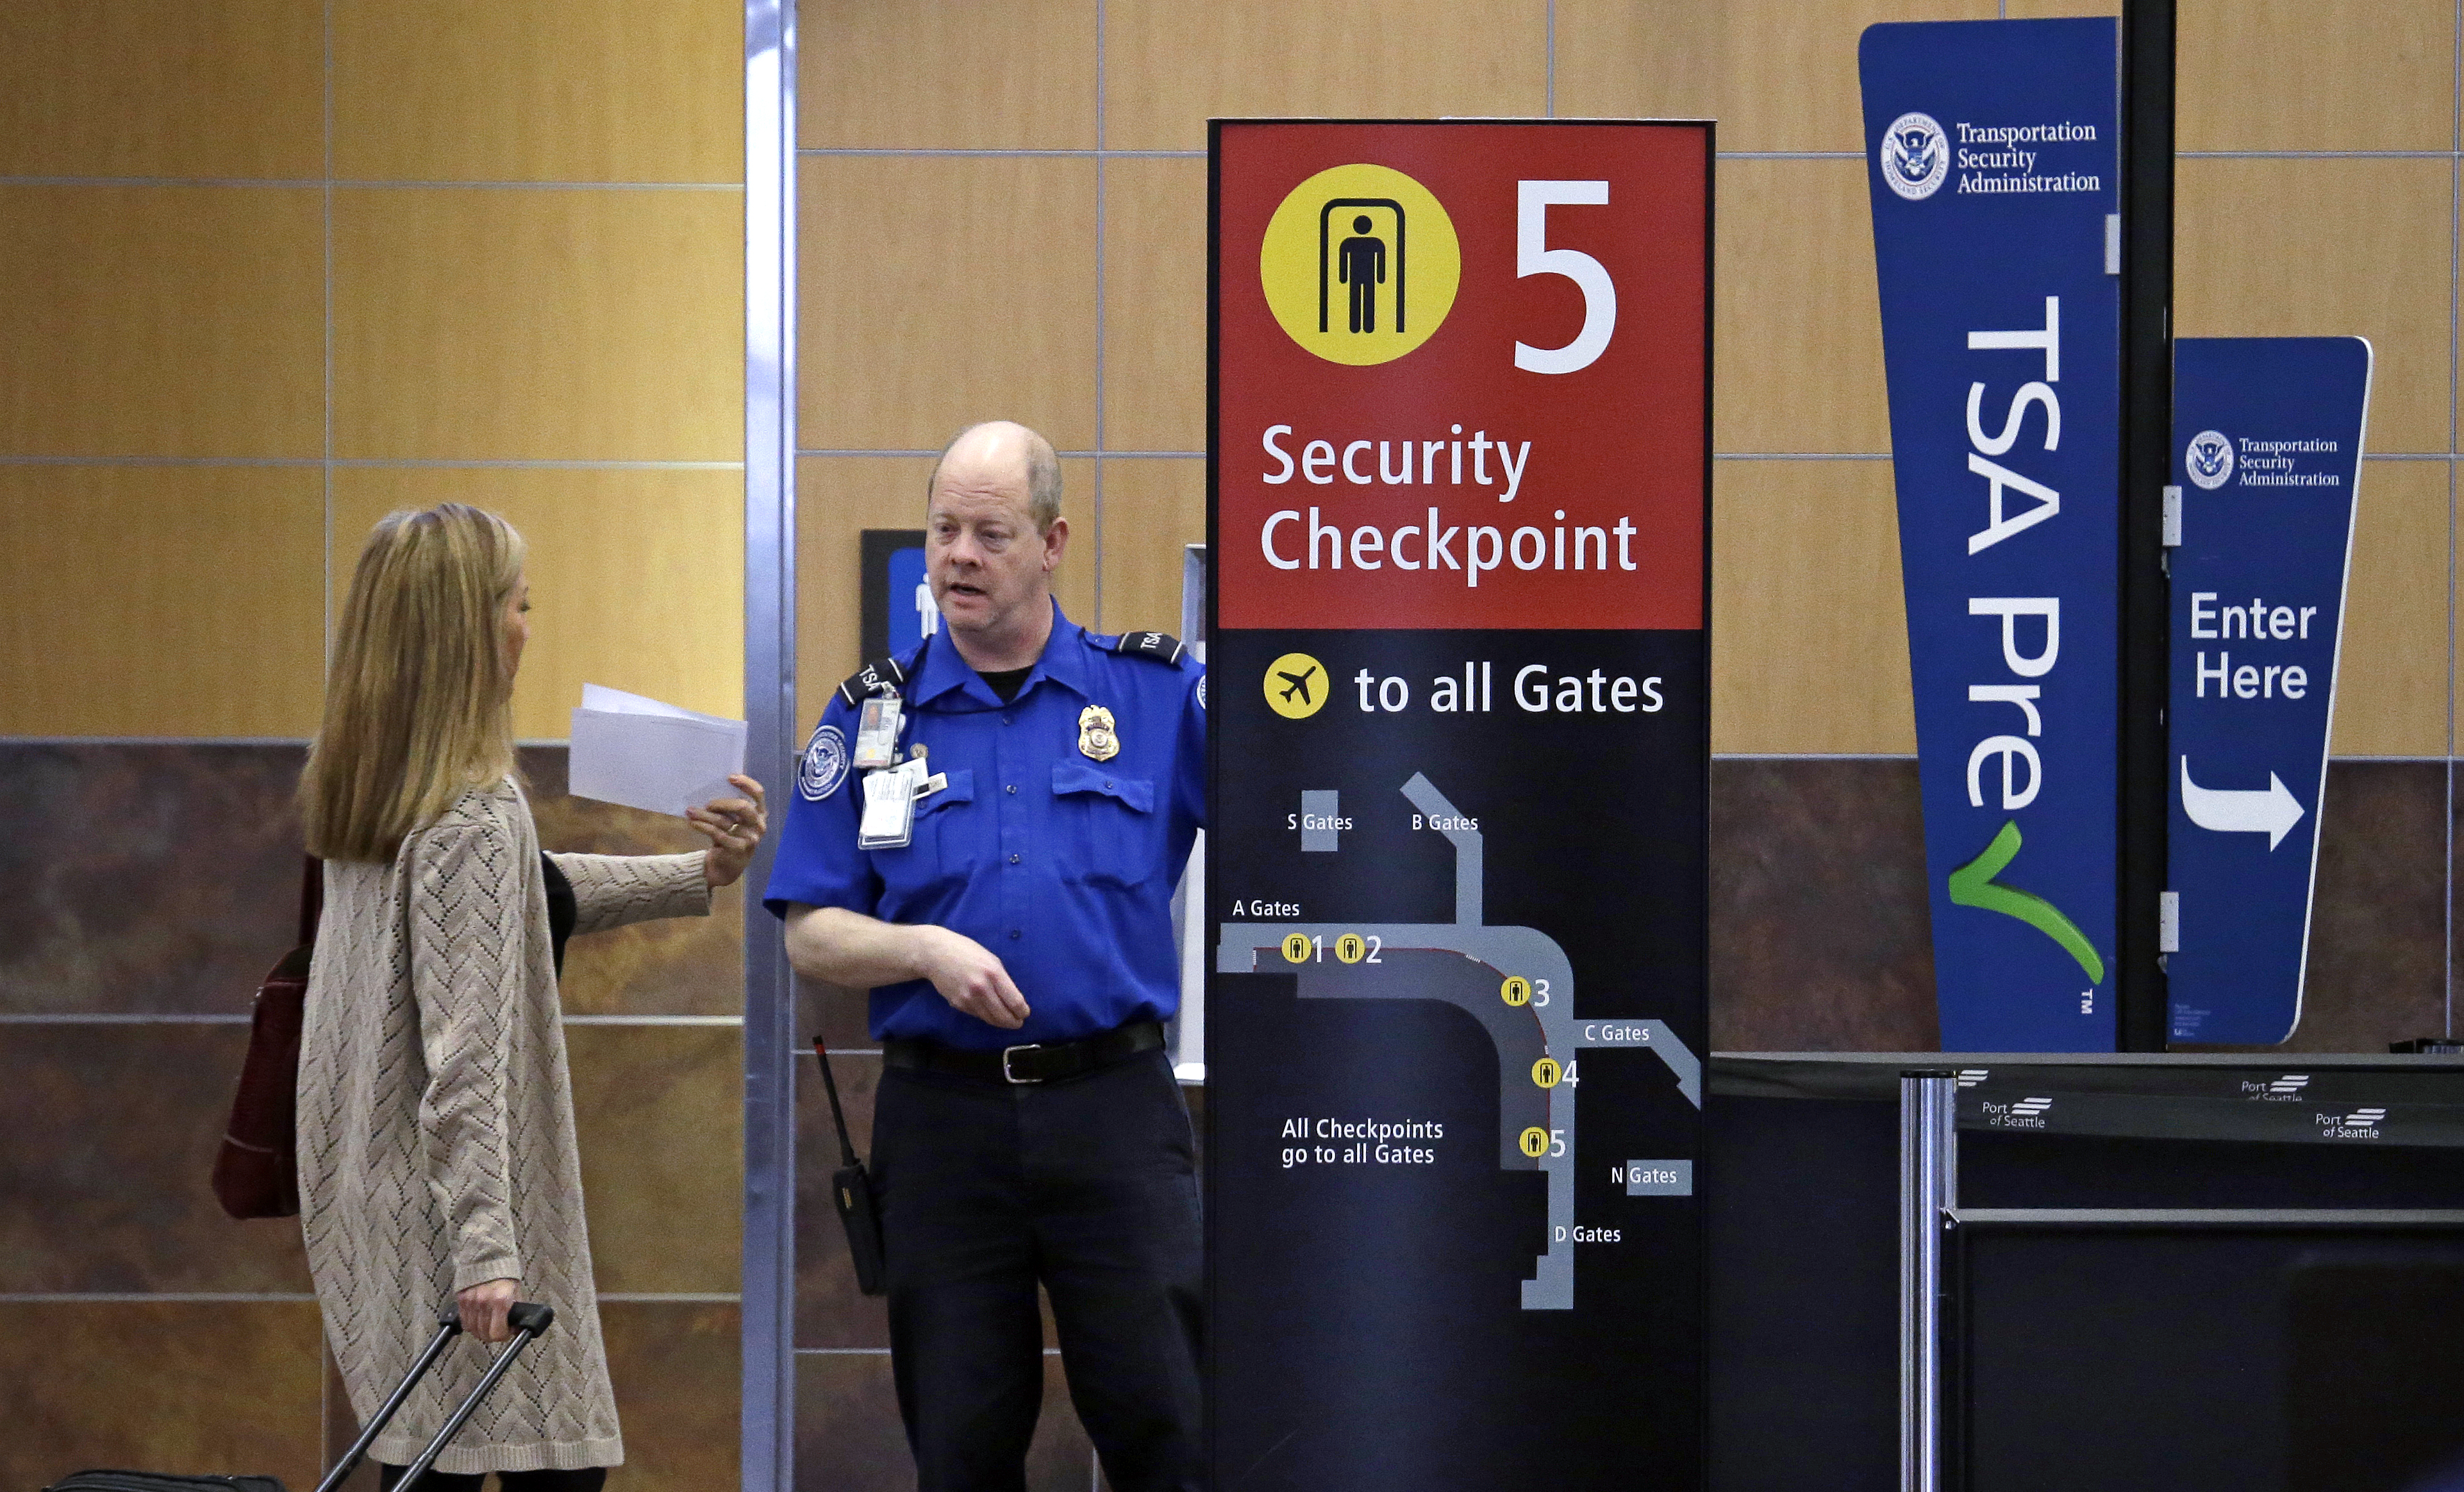 A passenger shows a boarding pass to a TSA agent at a security check-point at Seattle-Tacoma International Airport in SeaTac, Wash, March 24, 2015.